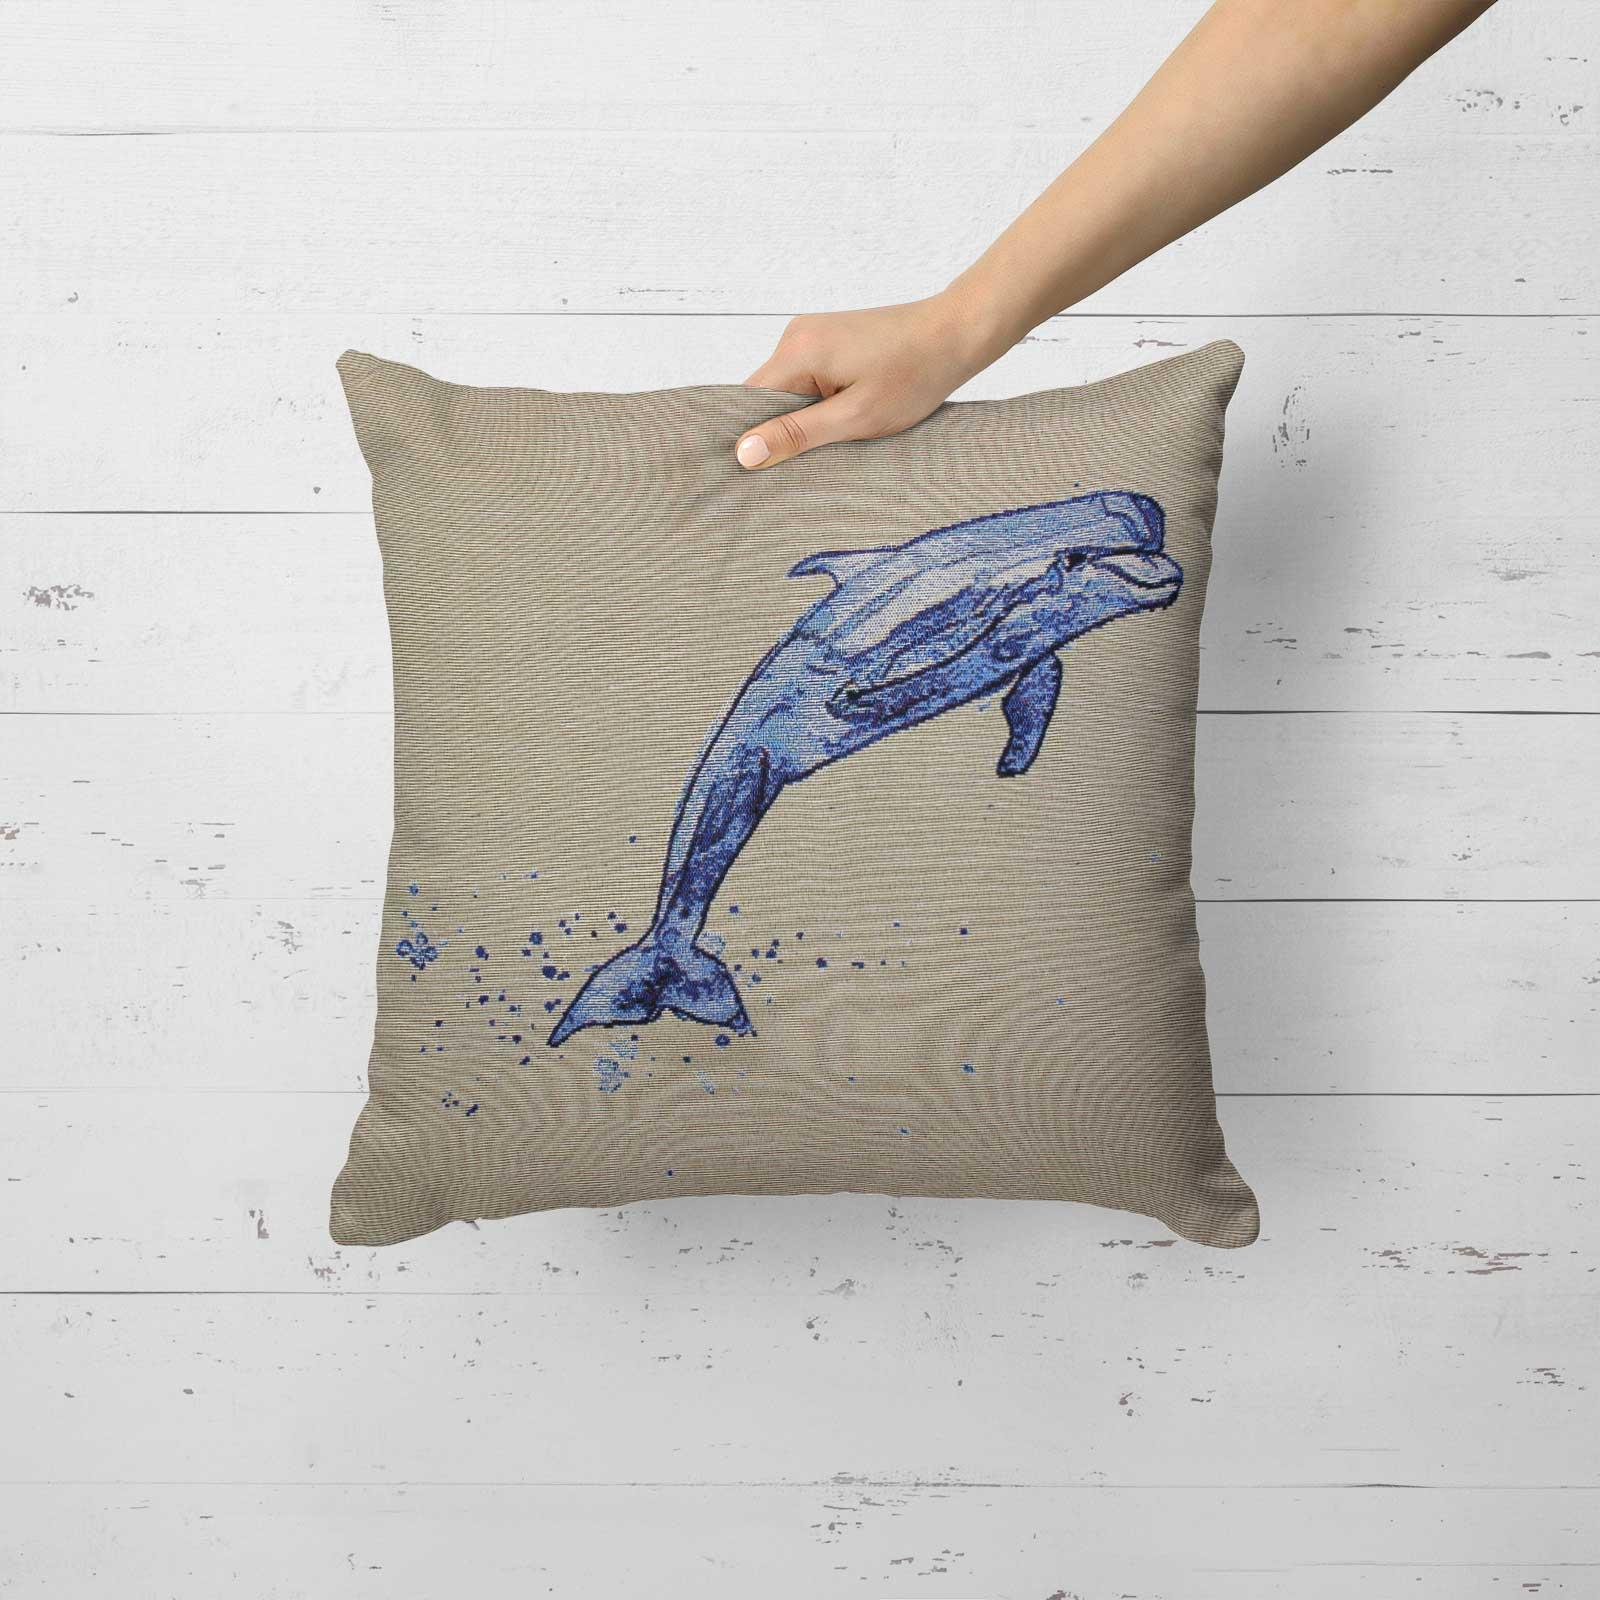 Tapestry-Cushion-Covers-Vintage-Pillow-Cover-Collection-18-034-45cm-Filled-Cushions thumbnail 45